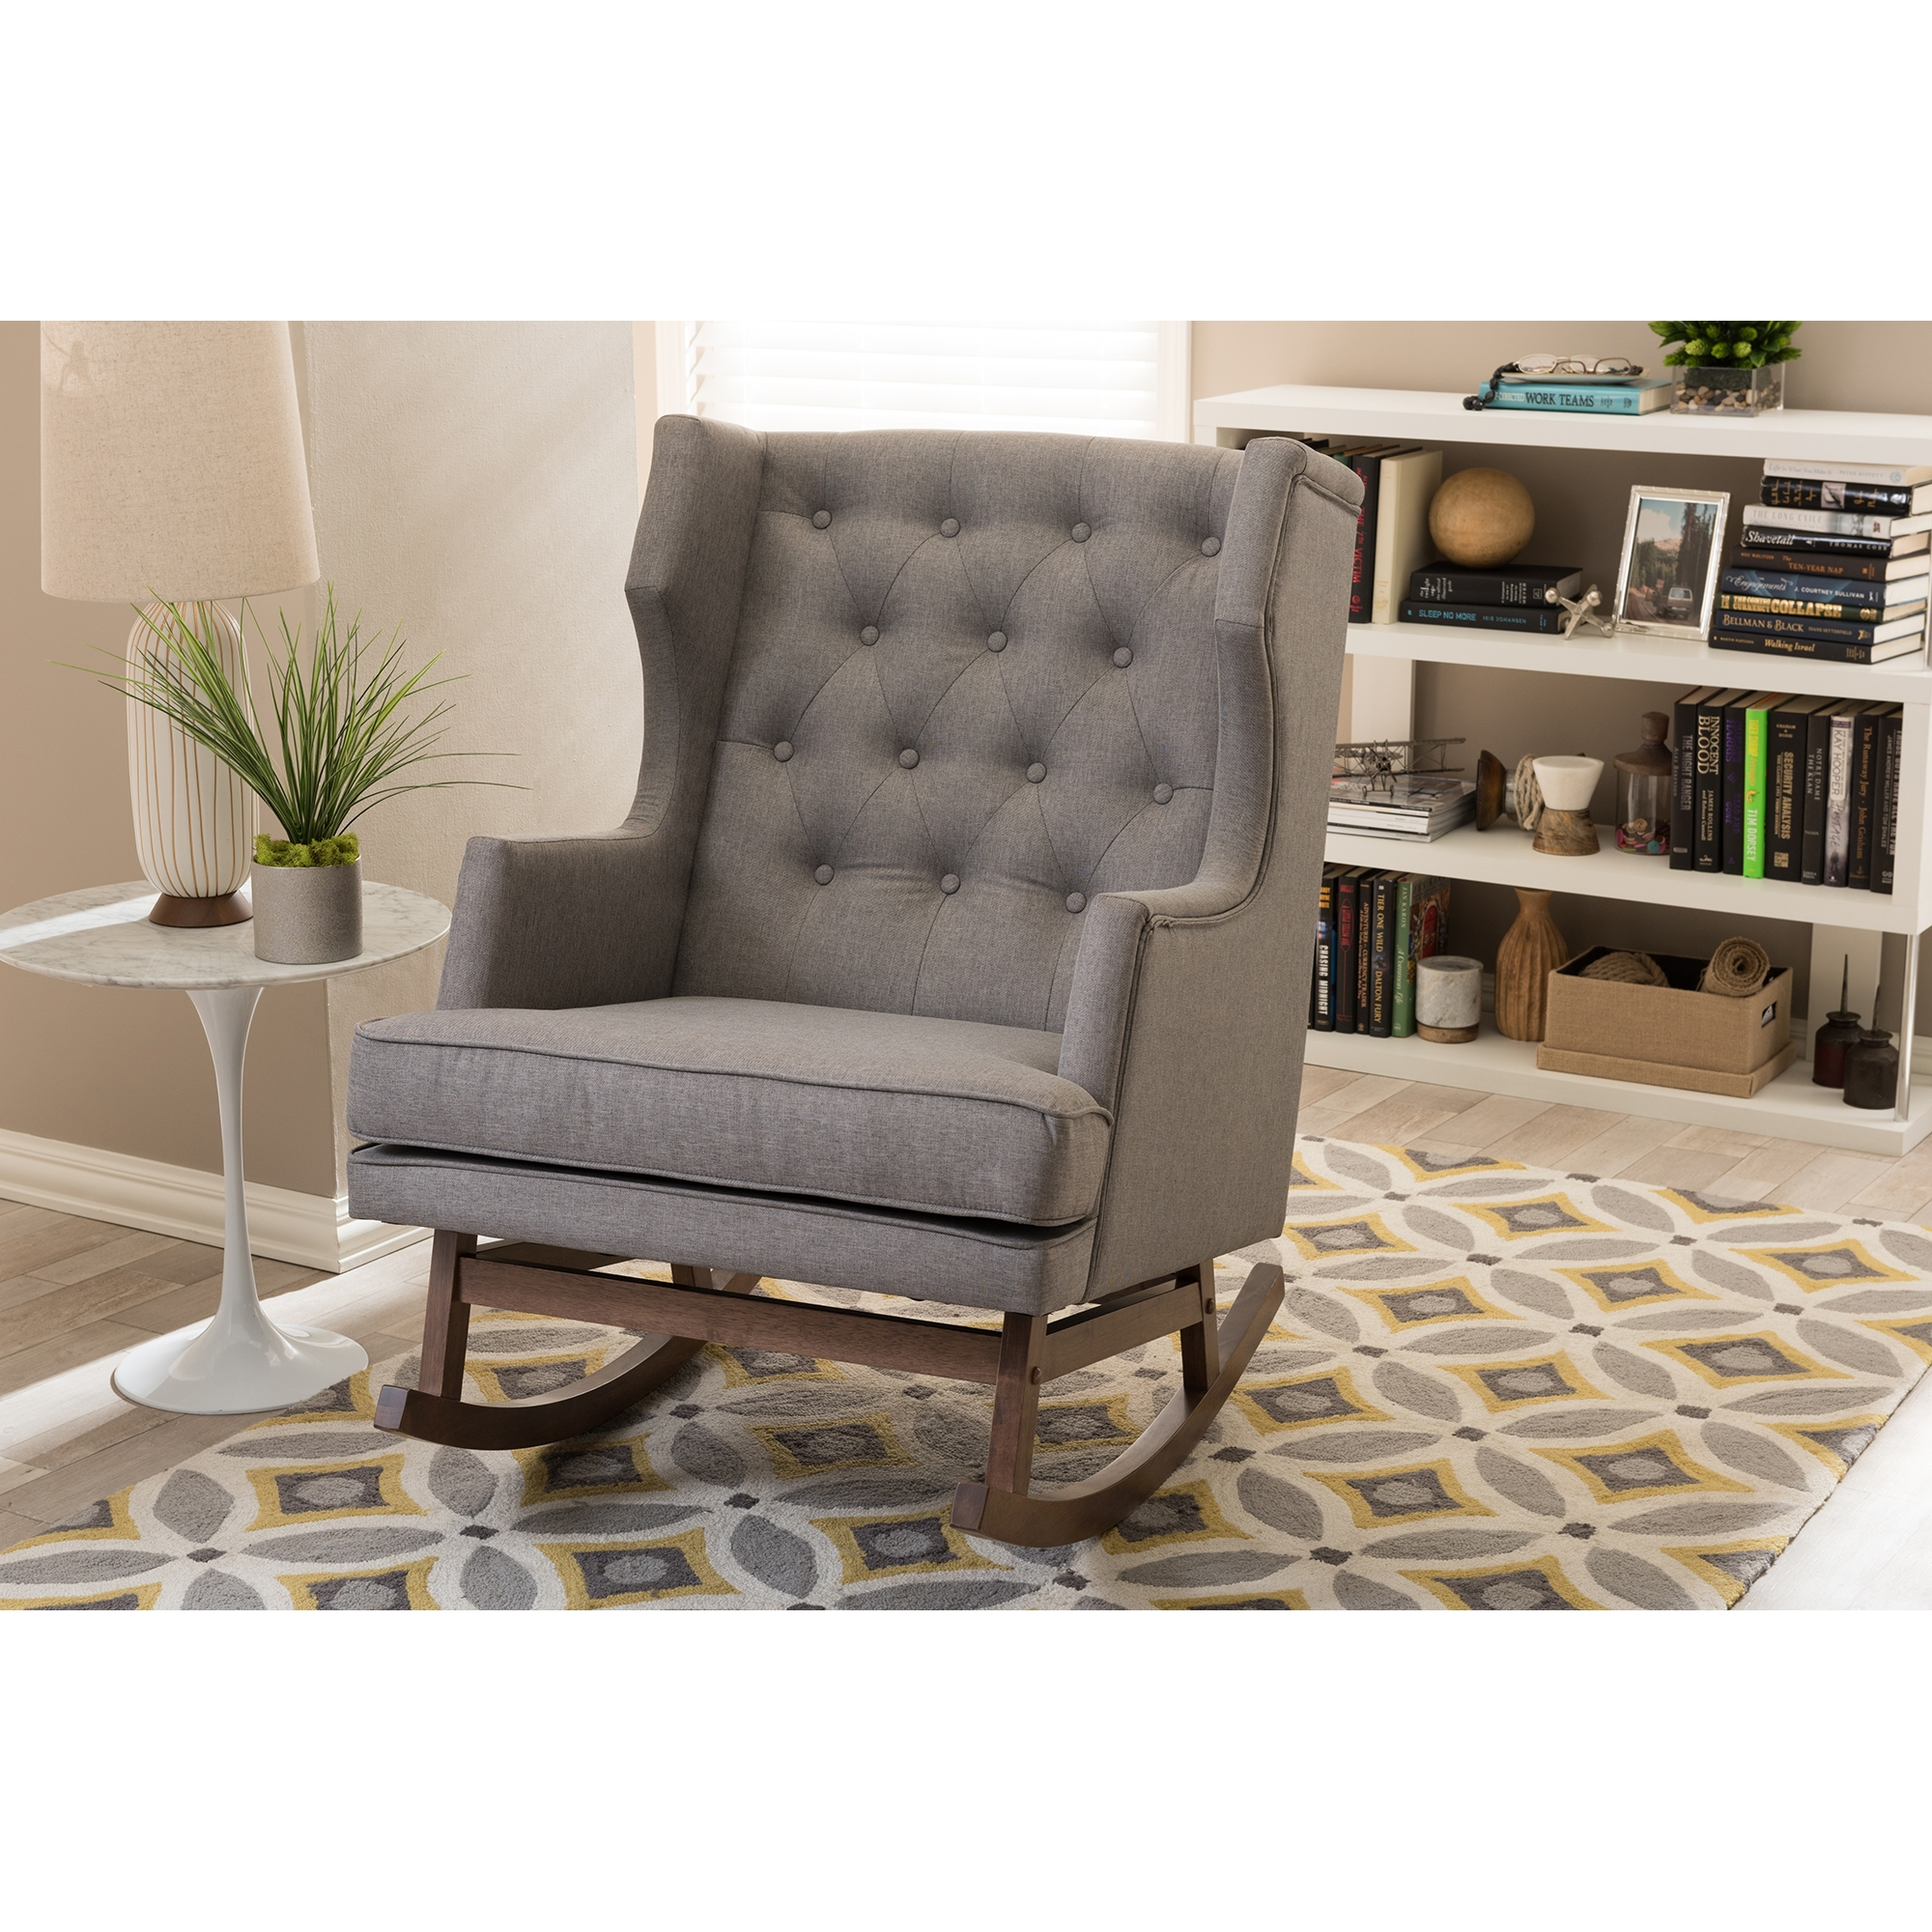 High Quality ... Baxton Studio Iona Mid Century Retro Modern Grey Fabric Upholstered  Button Tufted Wingback Rocking